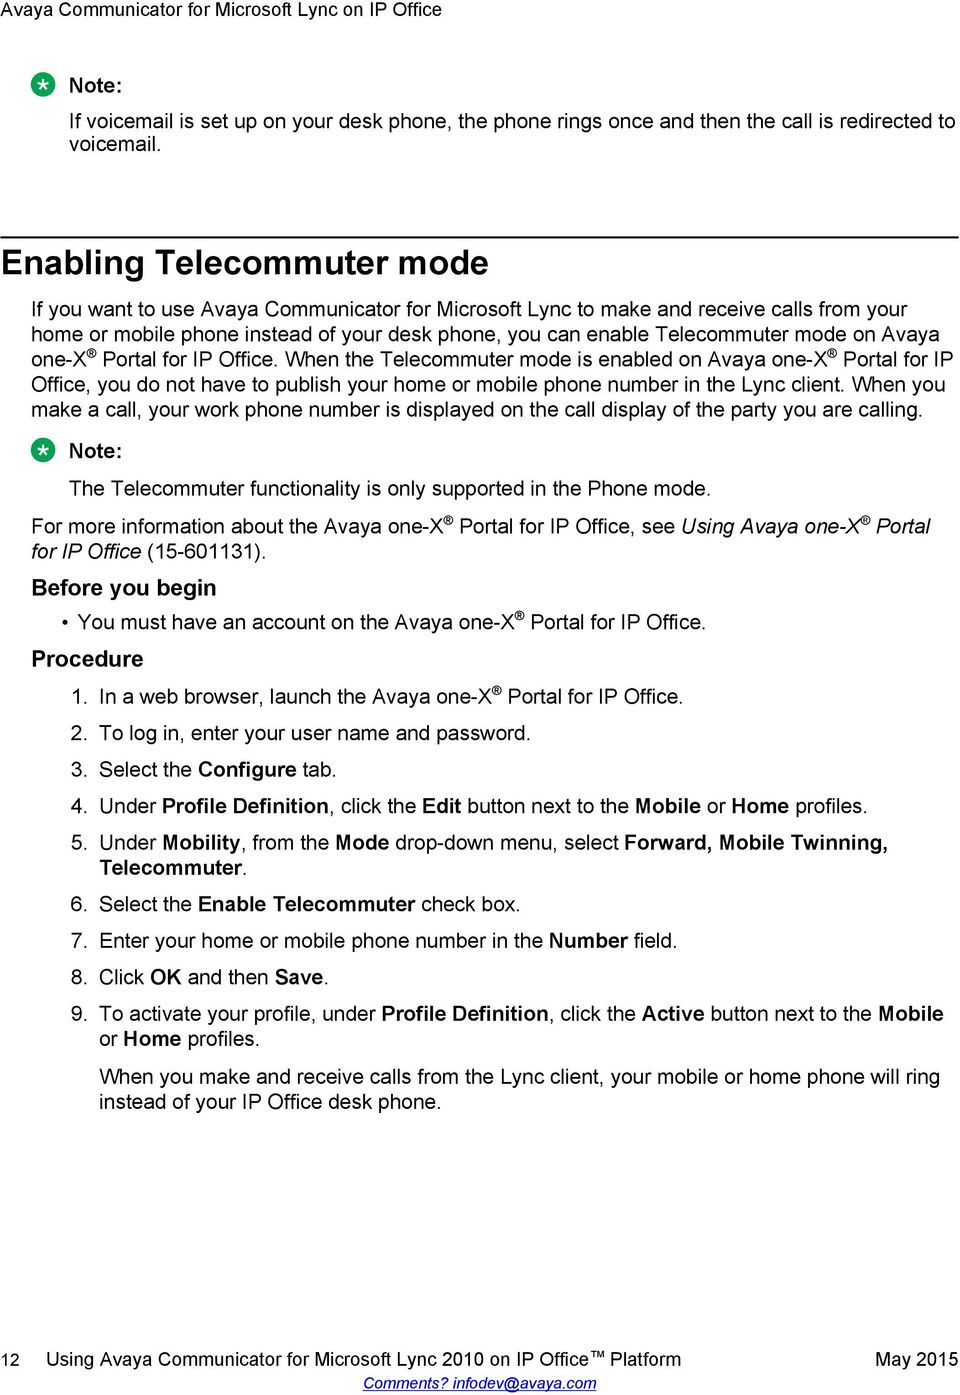 mode on Avaya one-x Portal for IP Office. When the Telecommuter mode is enabled on Avaya one-x Portal for IP Office, you do not have to publish your home or mobile phone number in the Lync client.